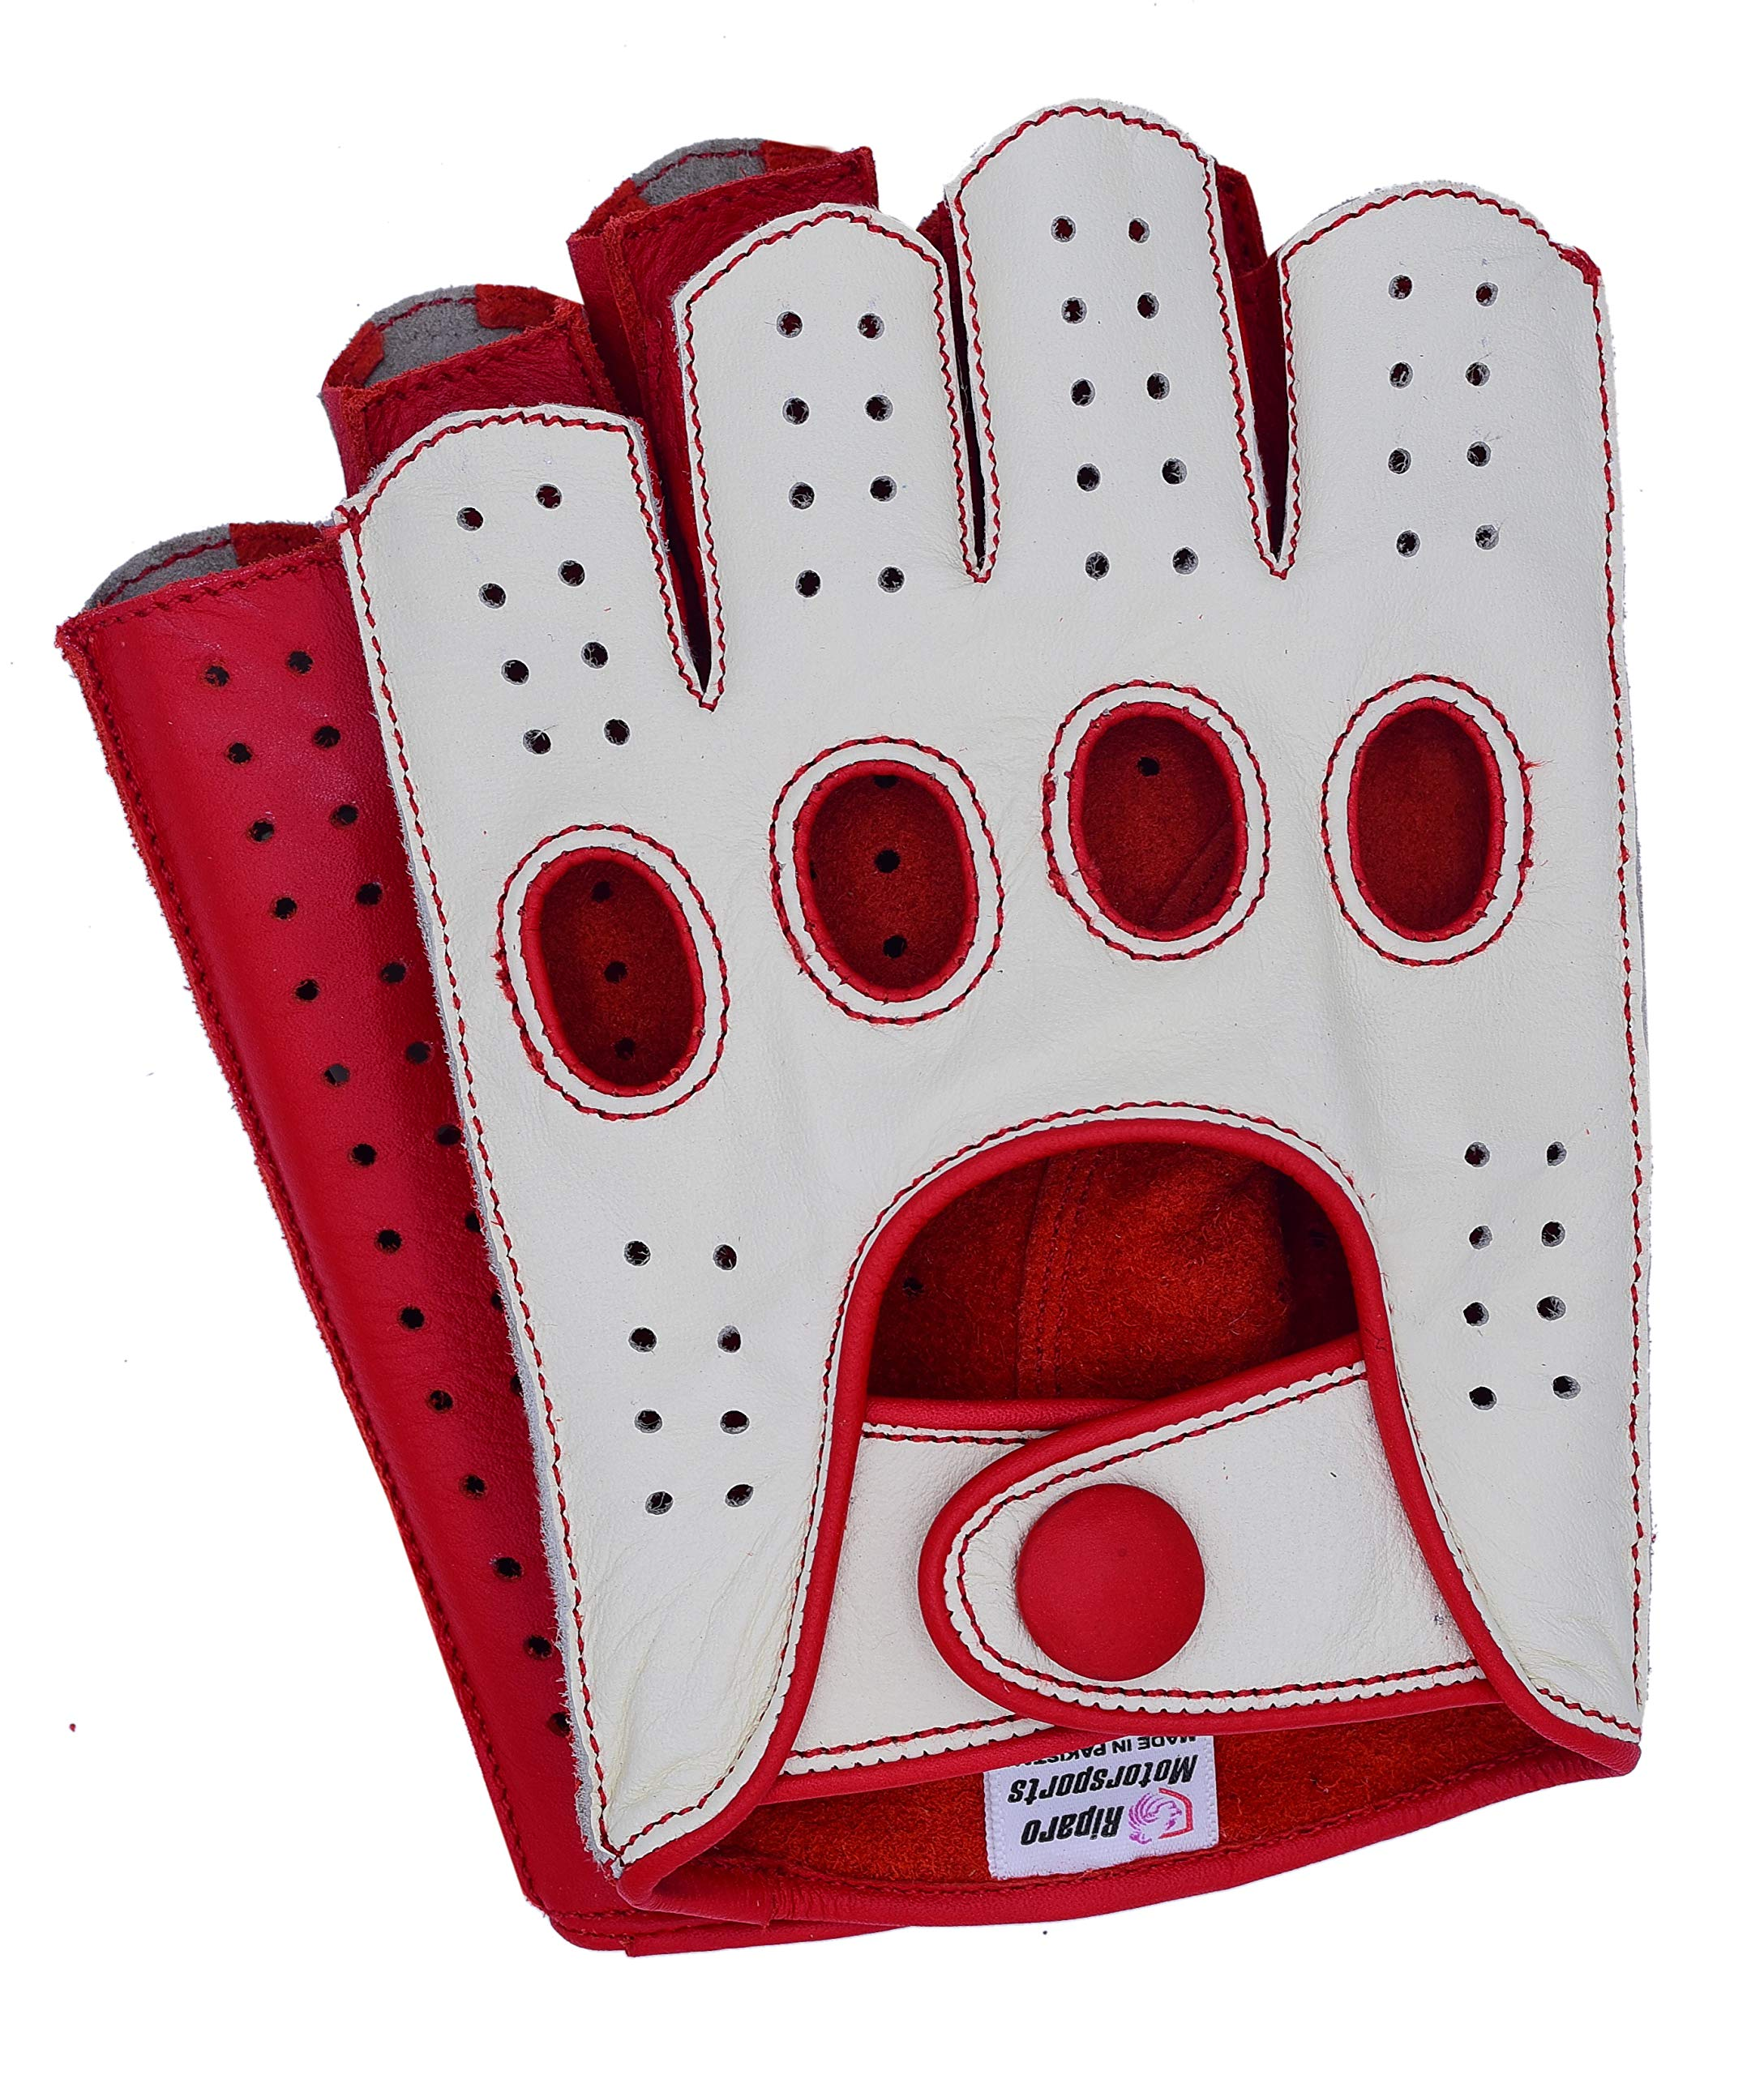 Riparo Mens Leather Reverse Stitched Fingerless Half-Finger Driving Motorcycle Gloves (Medium, White/Red)